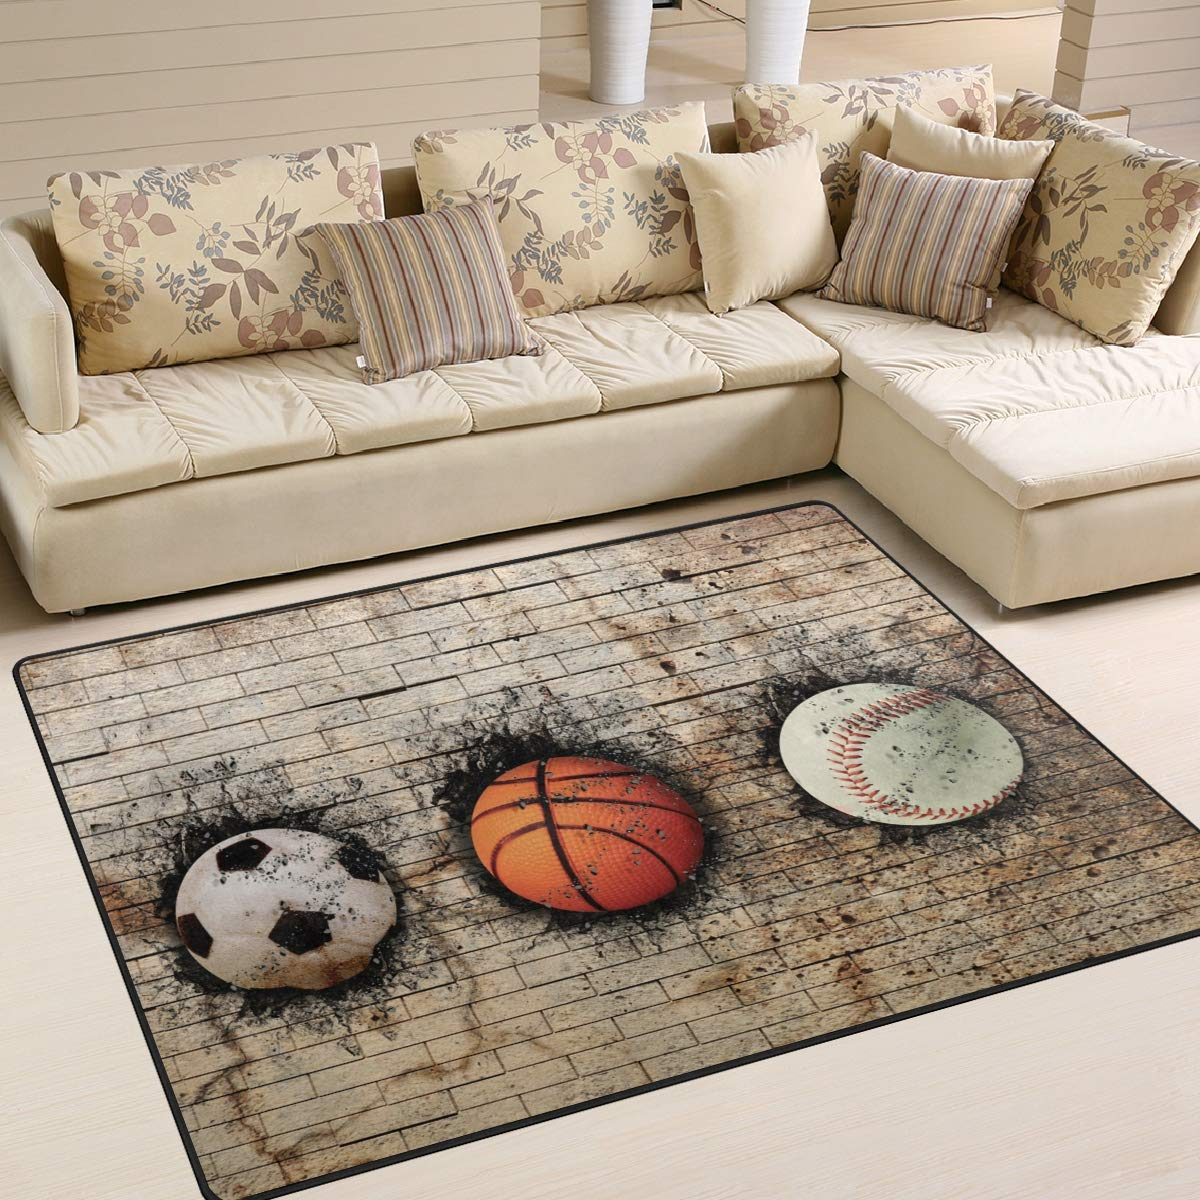 ALAZA Basketball Football Volleyball Hitting Wall Kids Area Rug, Non-Slip Floor Mat Soft Resting Area Doormats for Living Dining Bedroom 5' x 7'